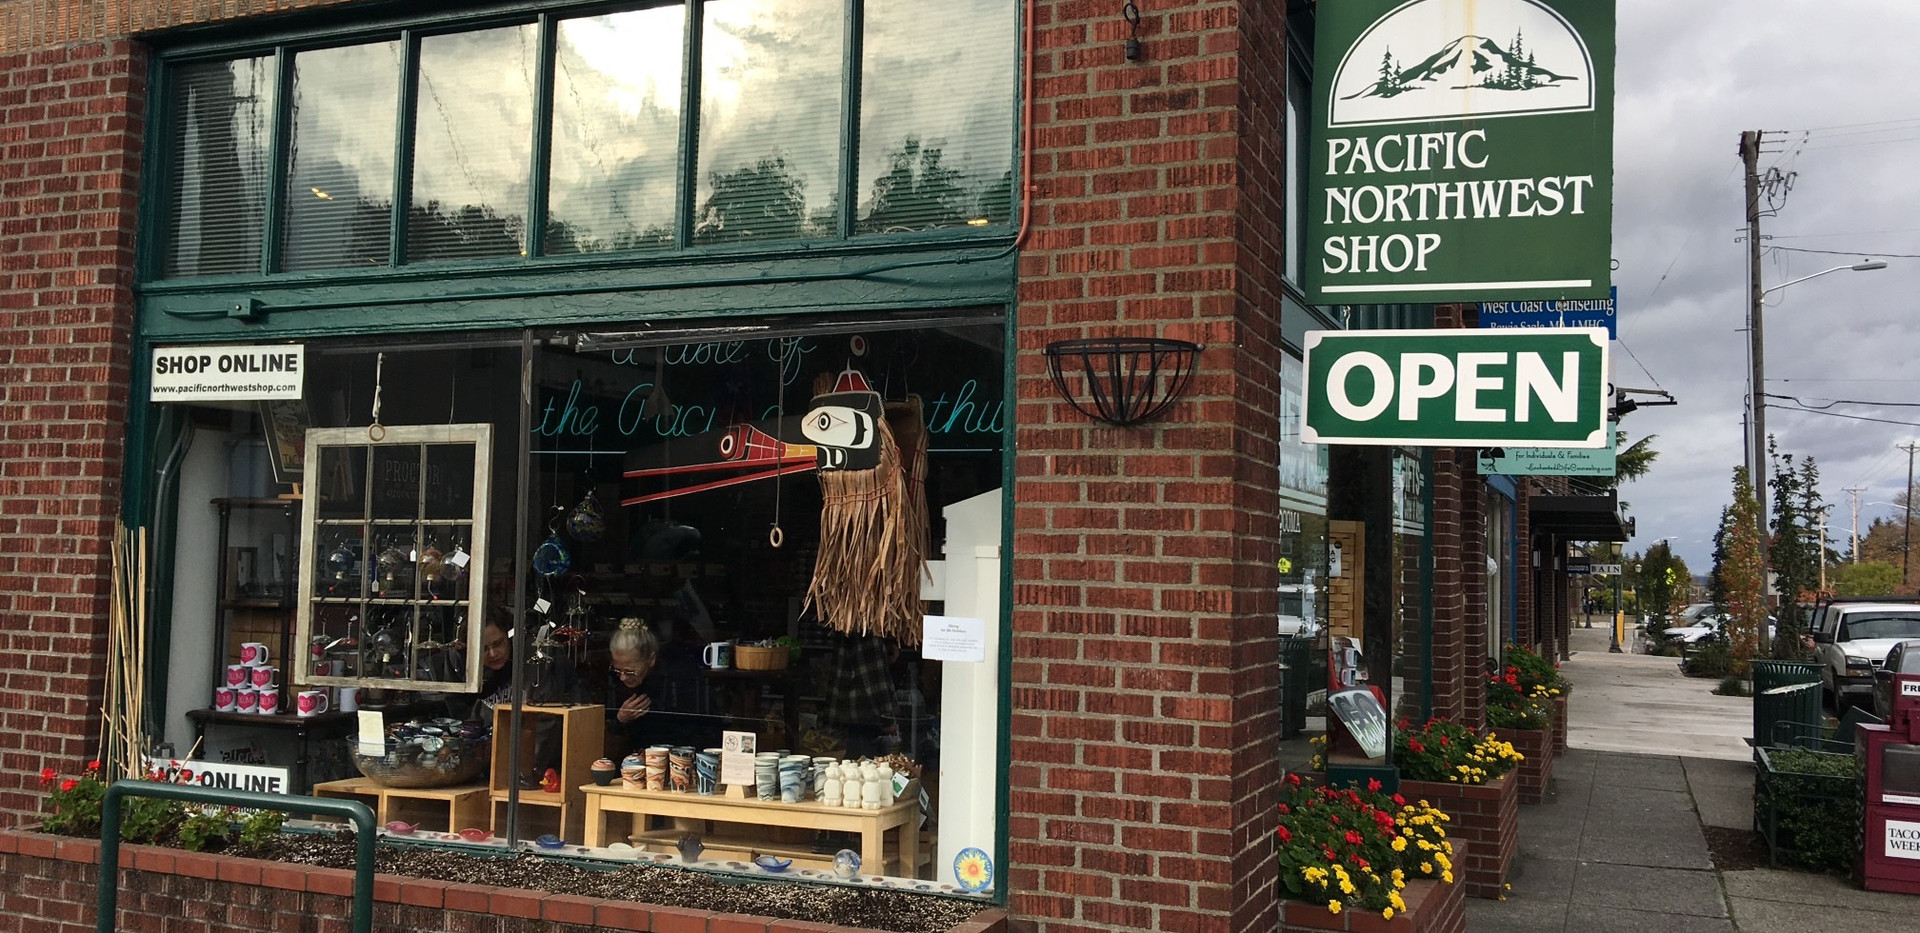 The Pacific Northwest Shop